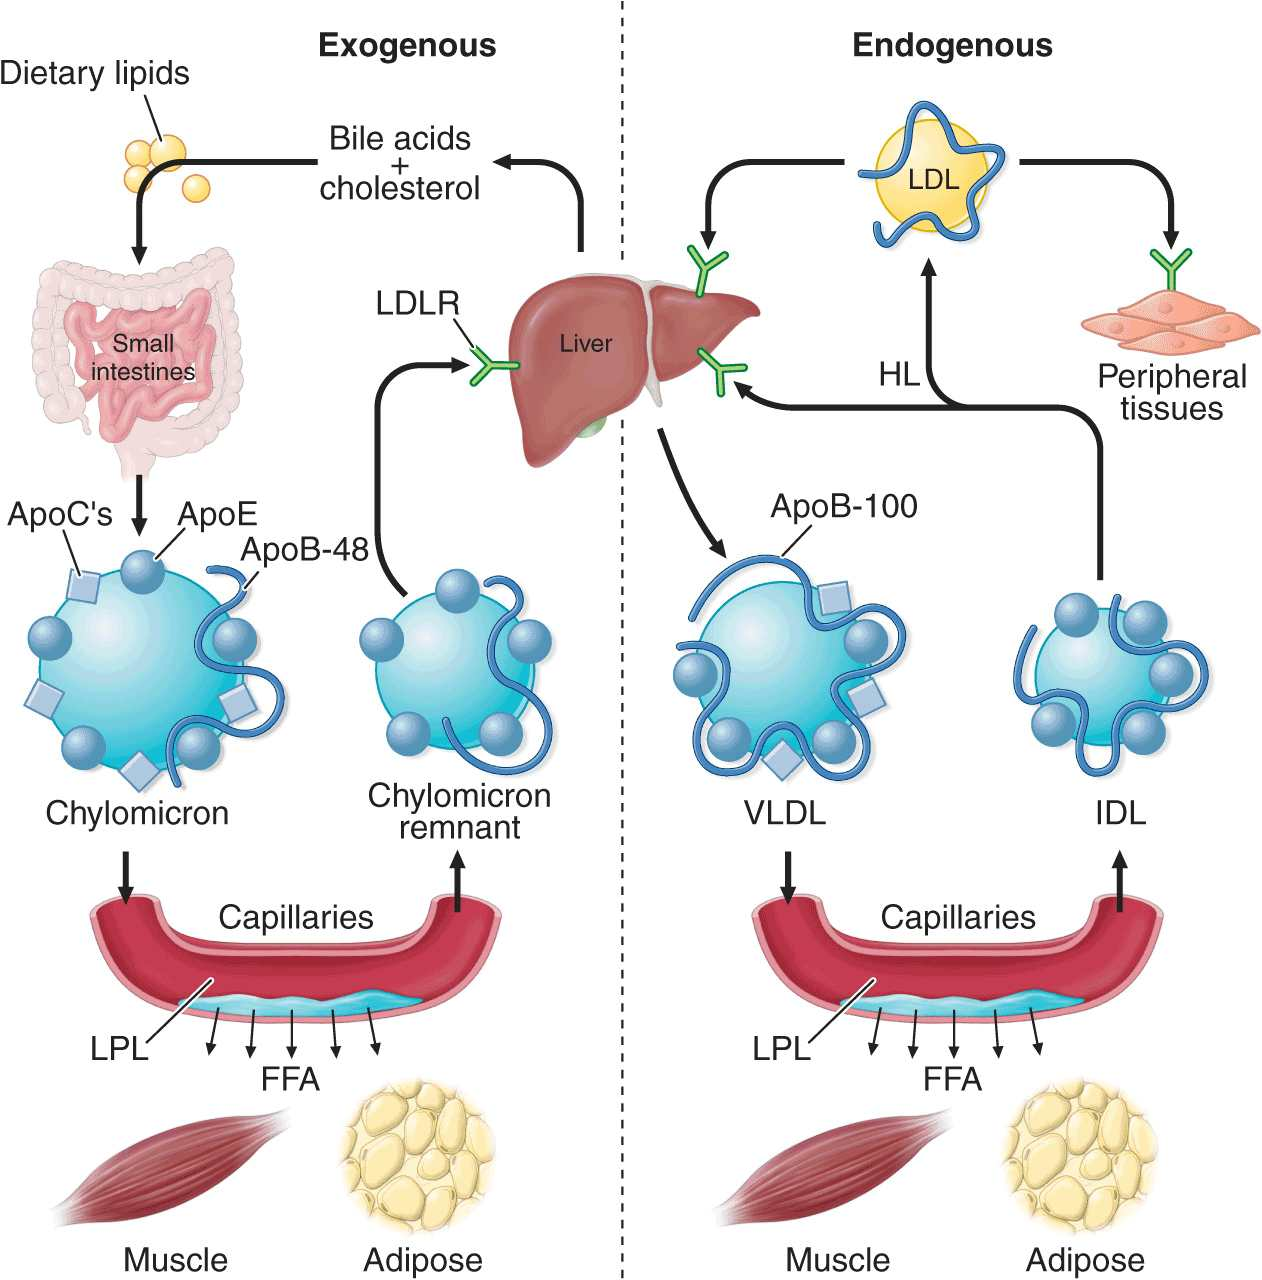 Disorders Of Lipoprotein Metabolism on liver ldl